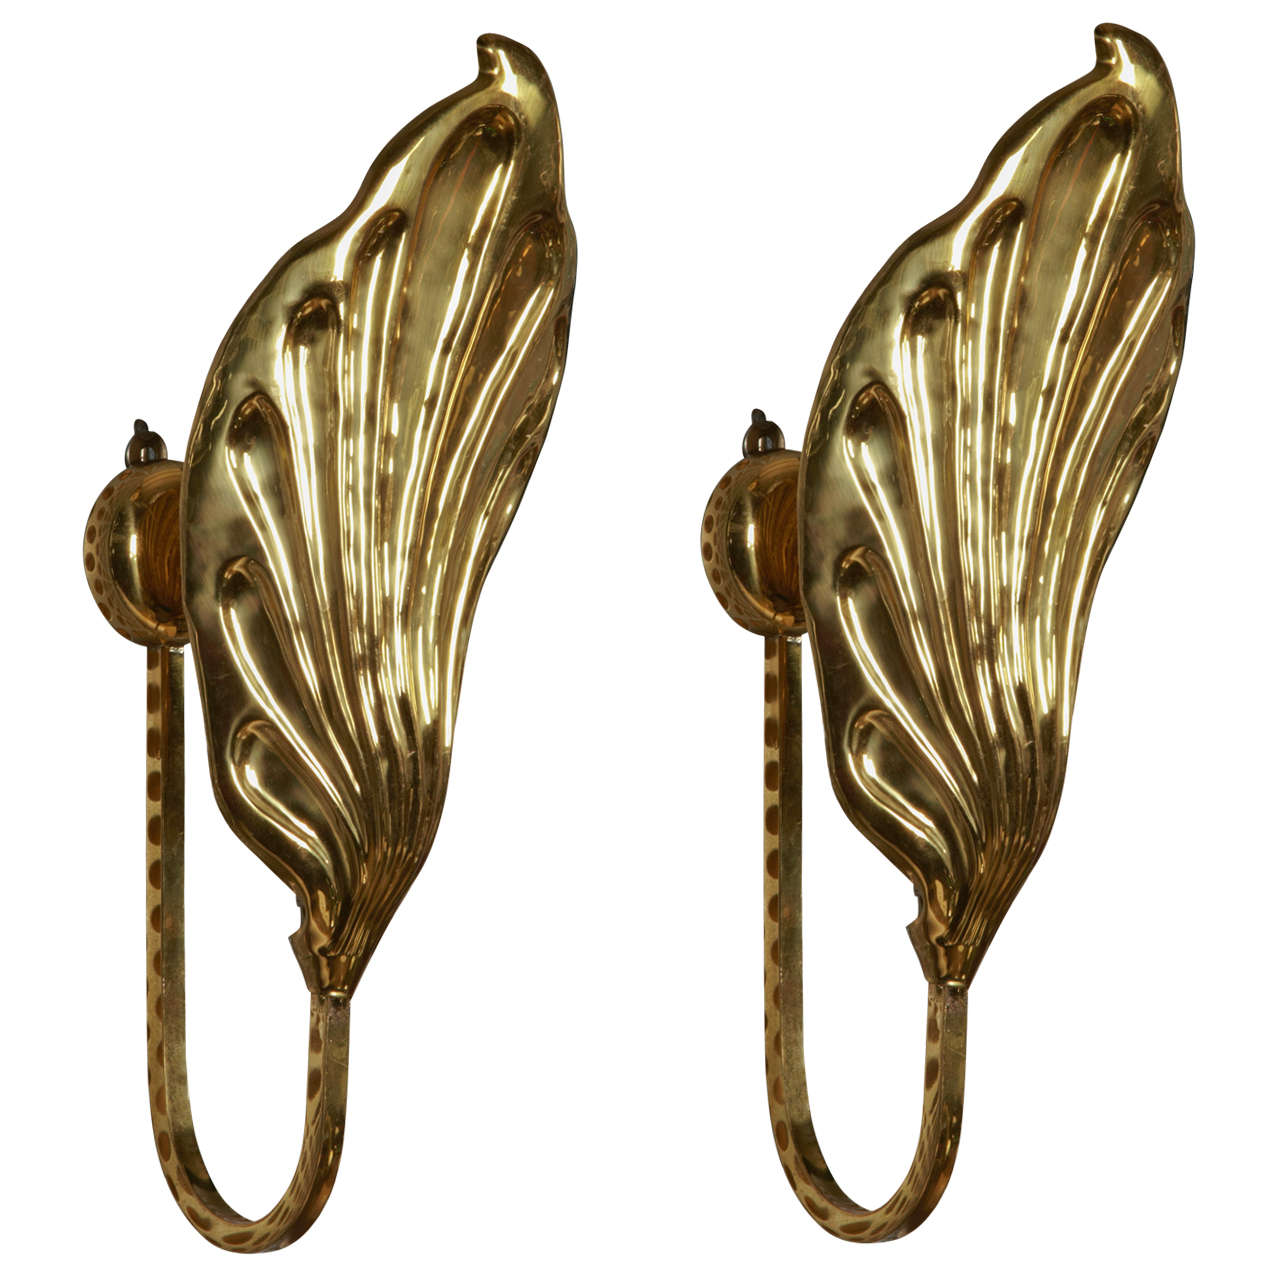 Pair of Leafs Sconces by Tomasso Barbi For Sale